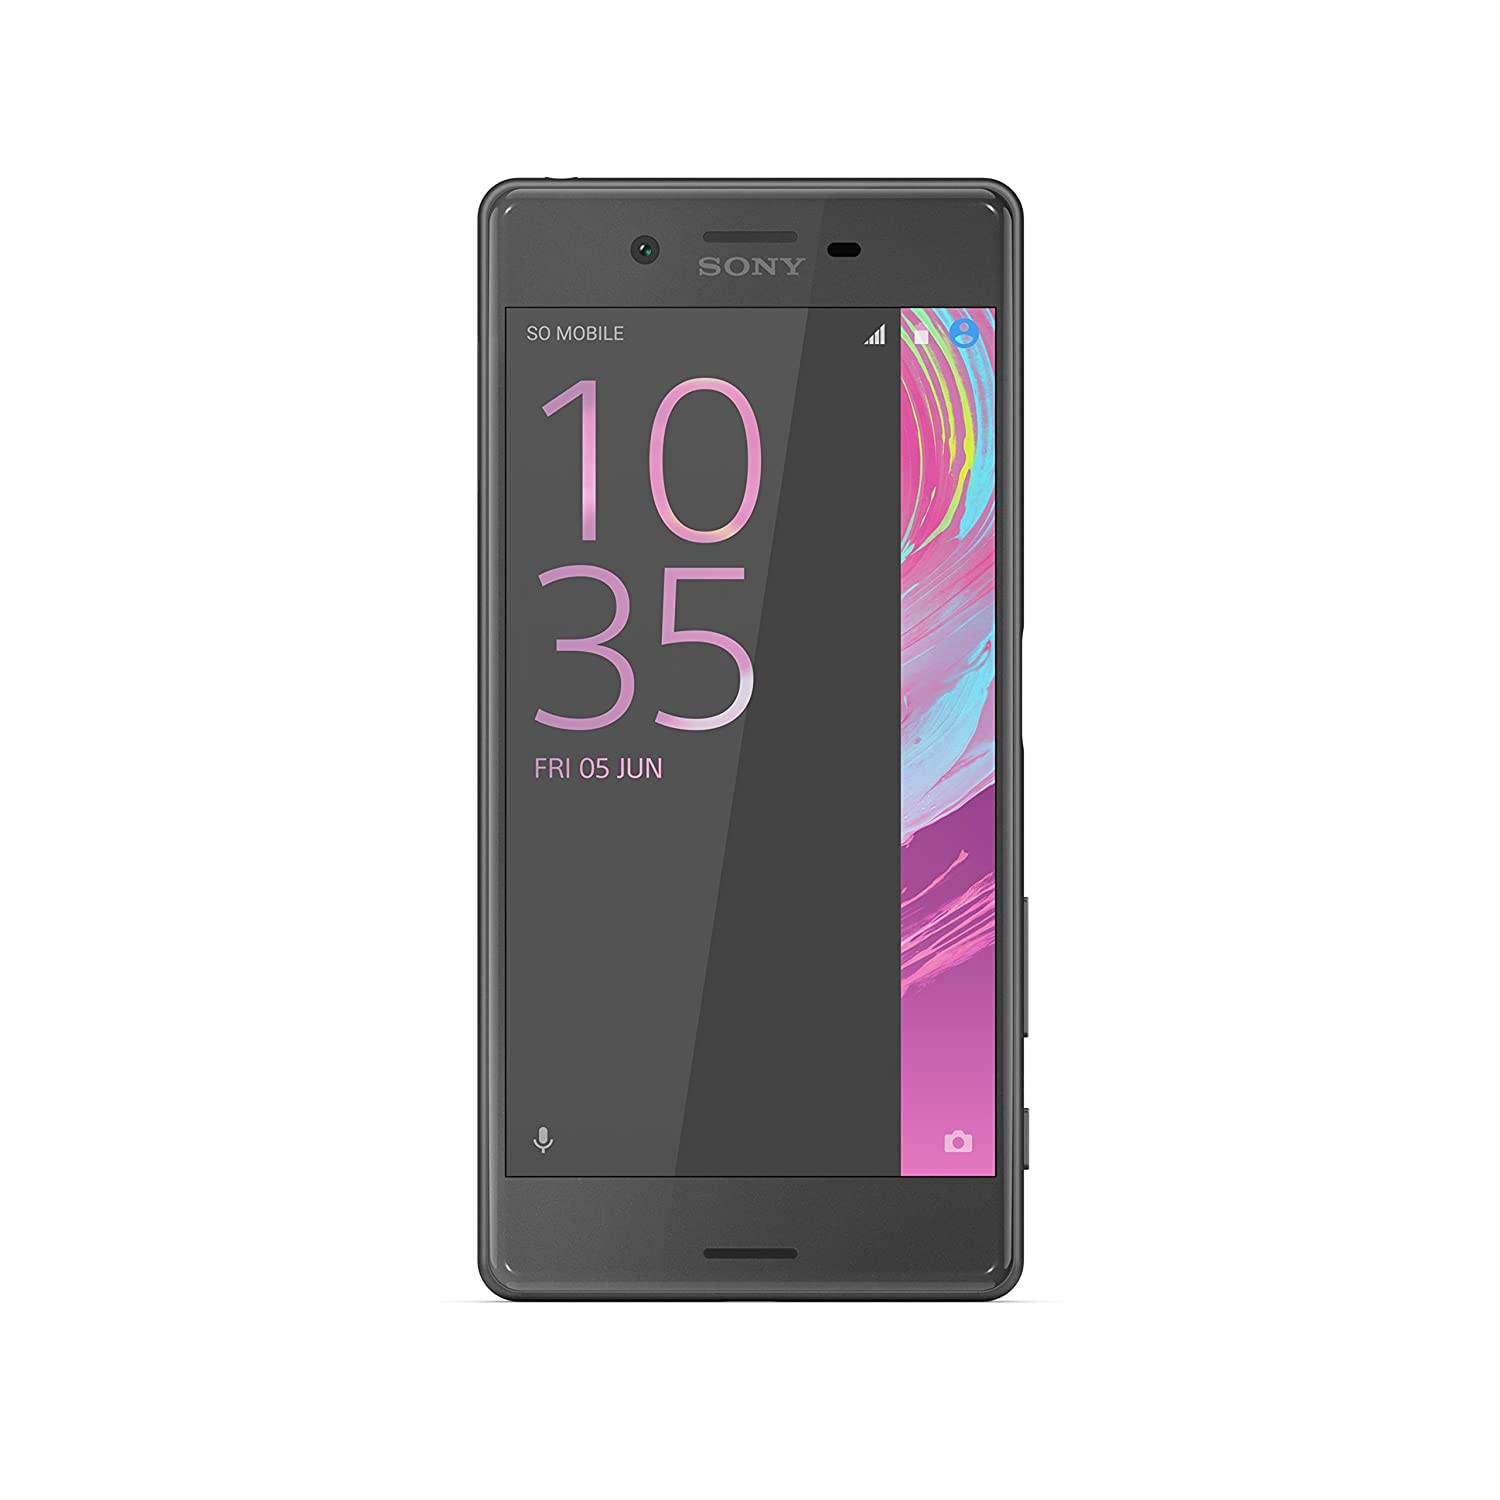 Amazon Sony Xperia X unlocked smartphone 32GB Black US Warranty Cell Phones & Accessories